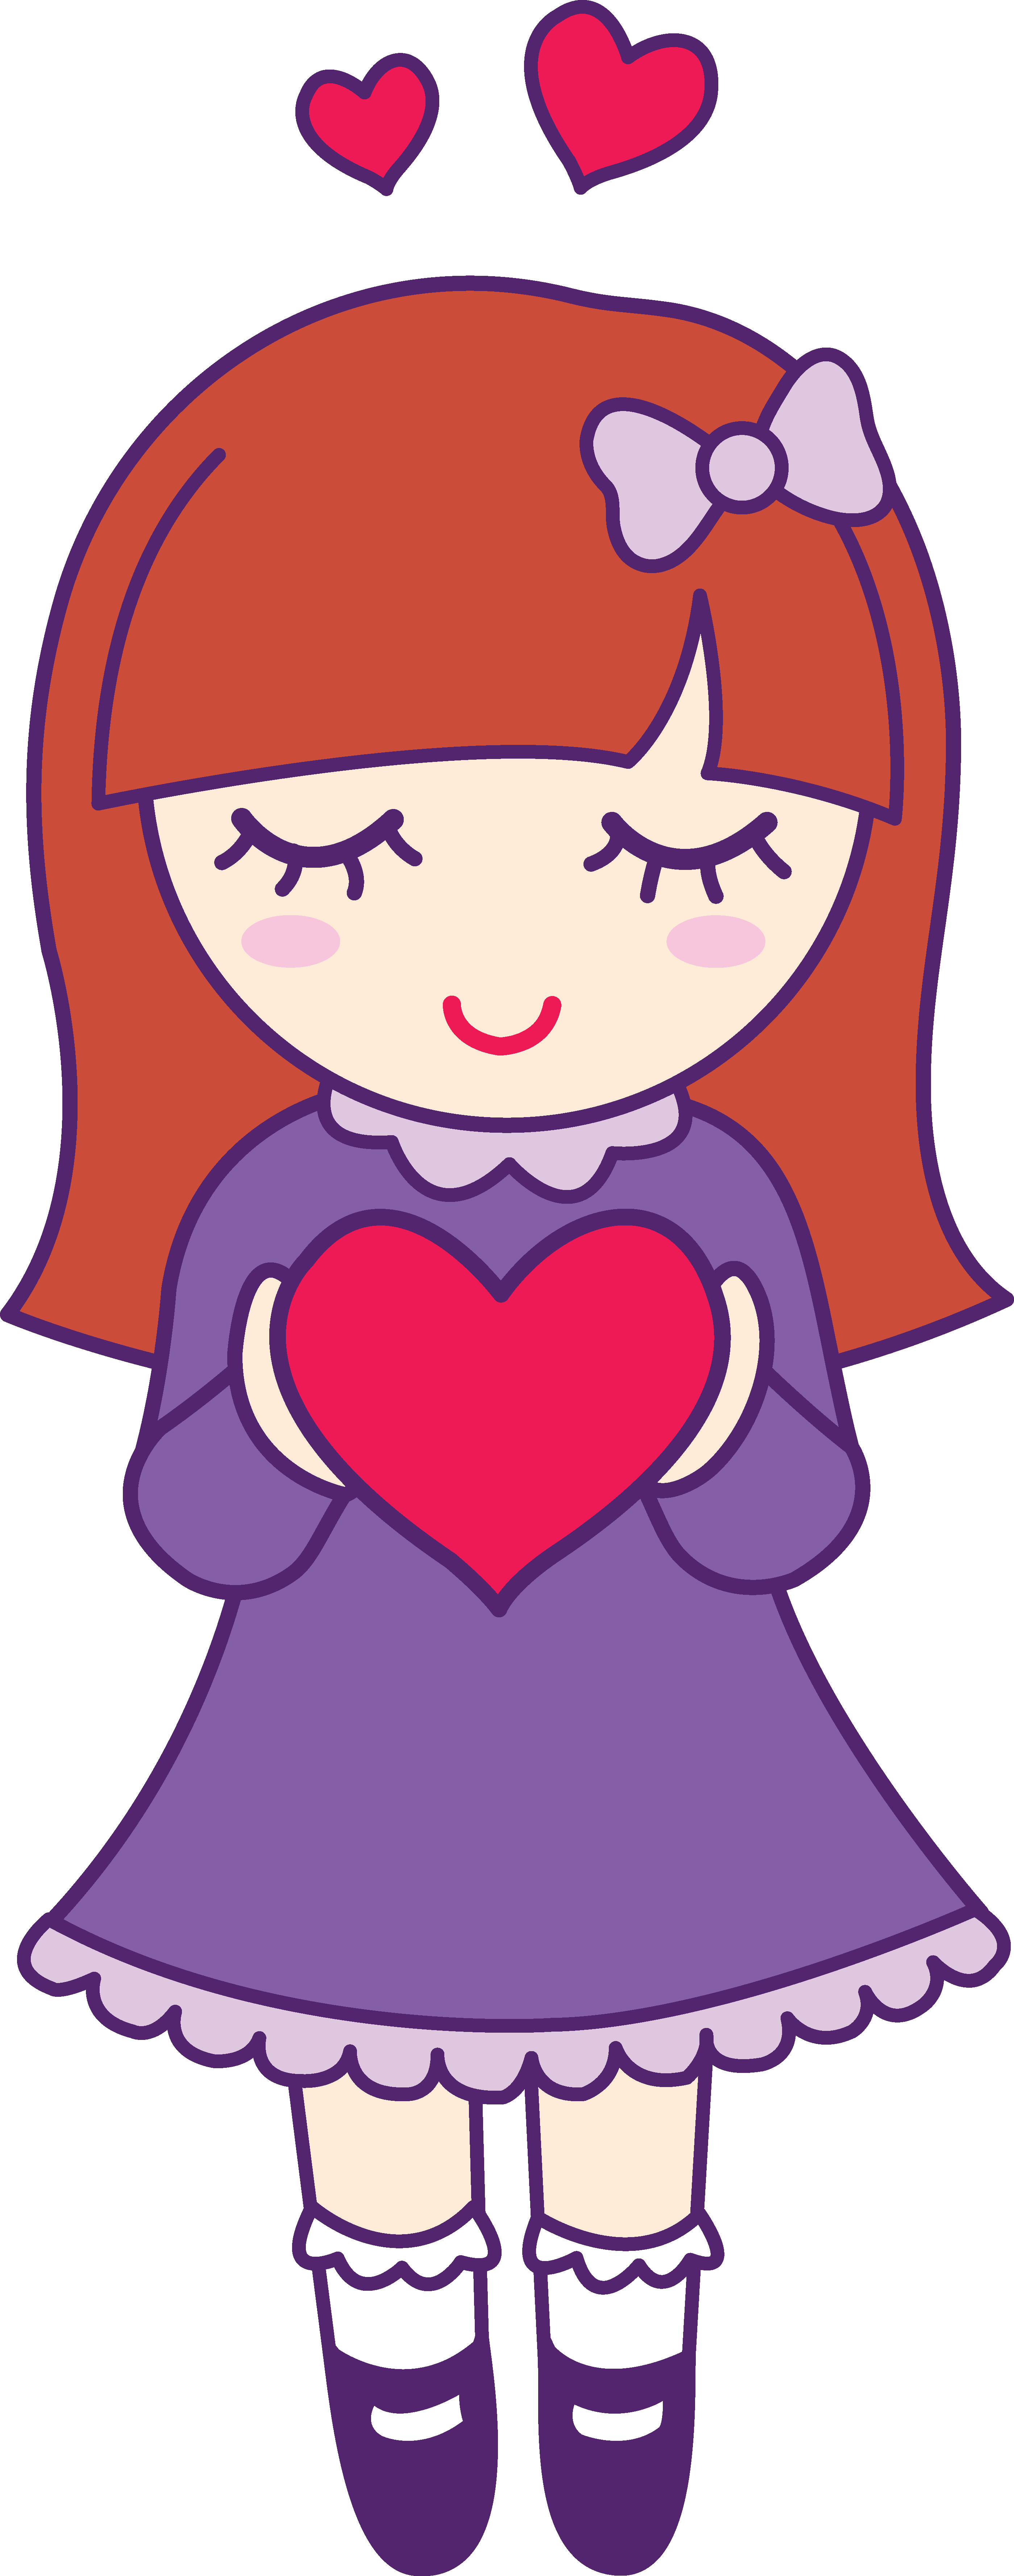 clipart transparent Girl panda free images. Girly clipart heart